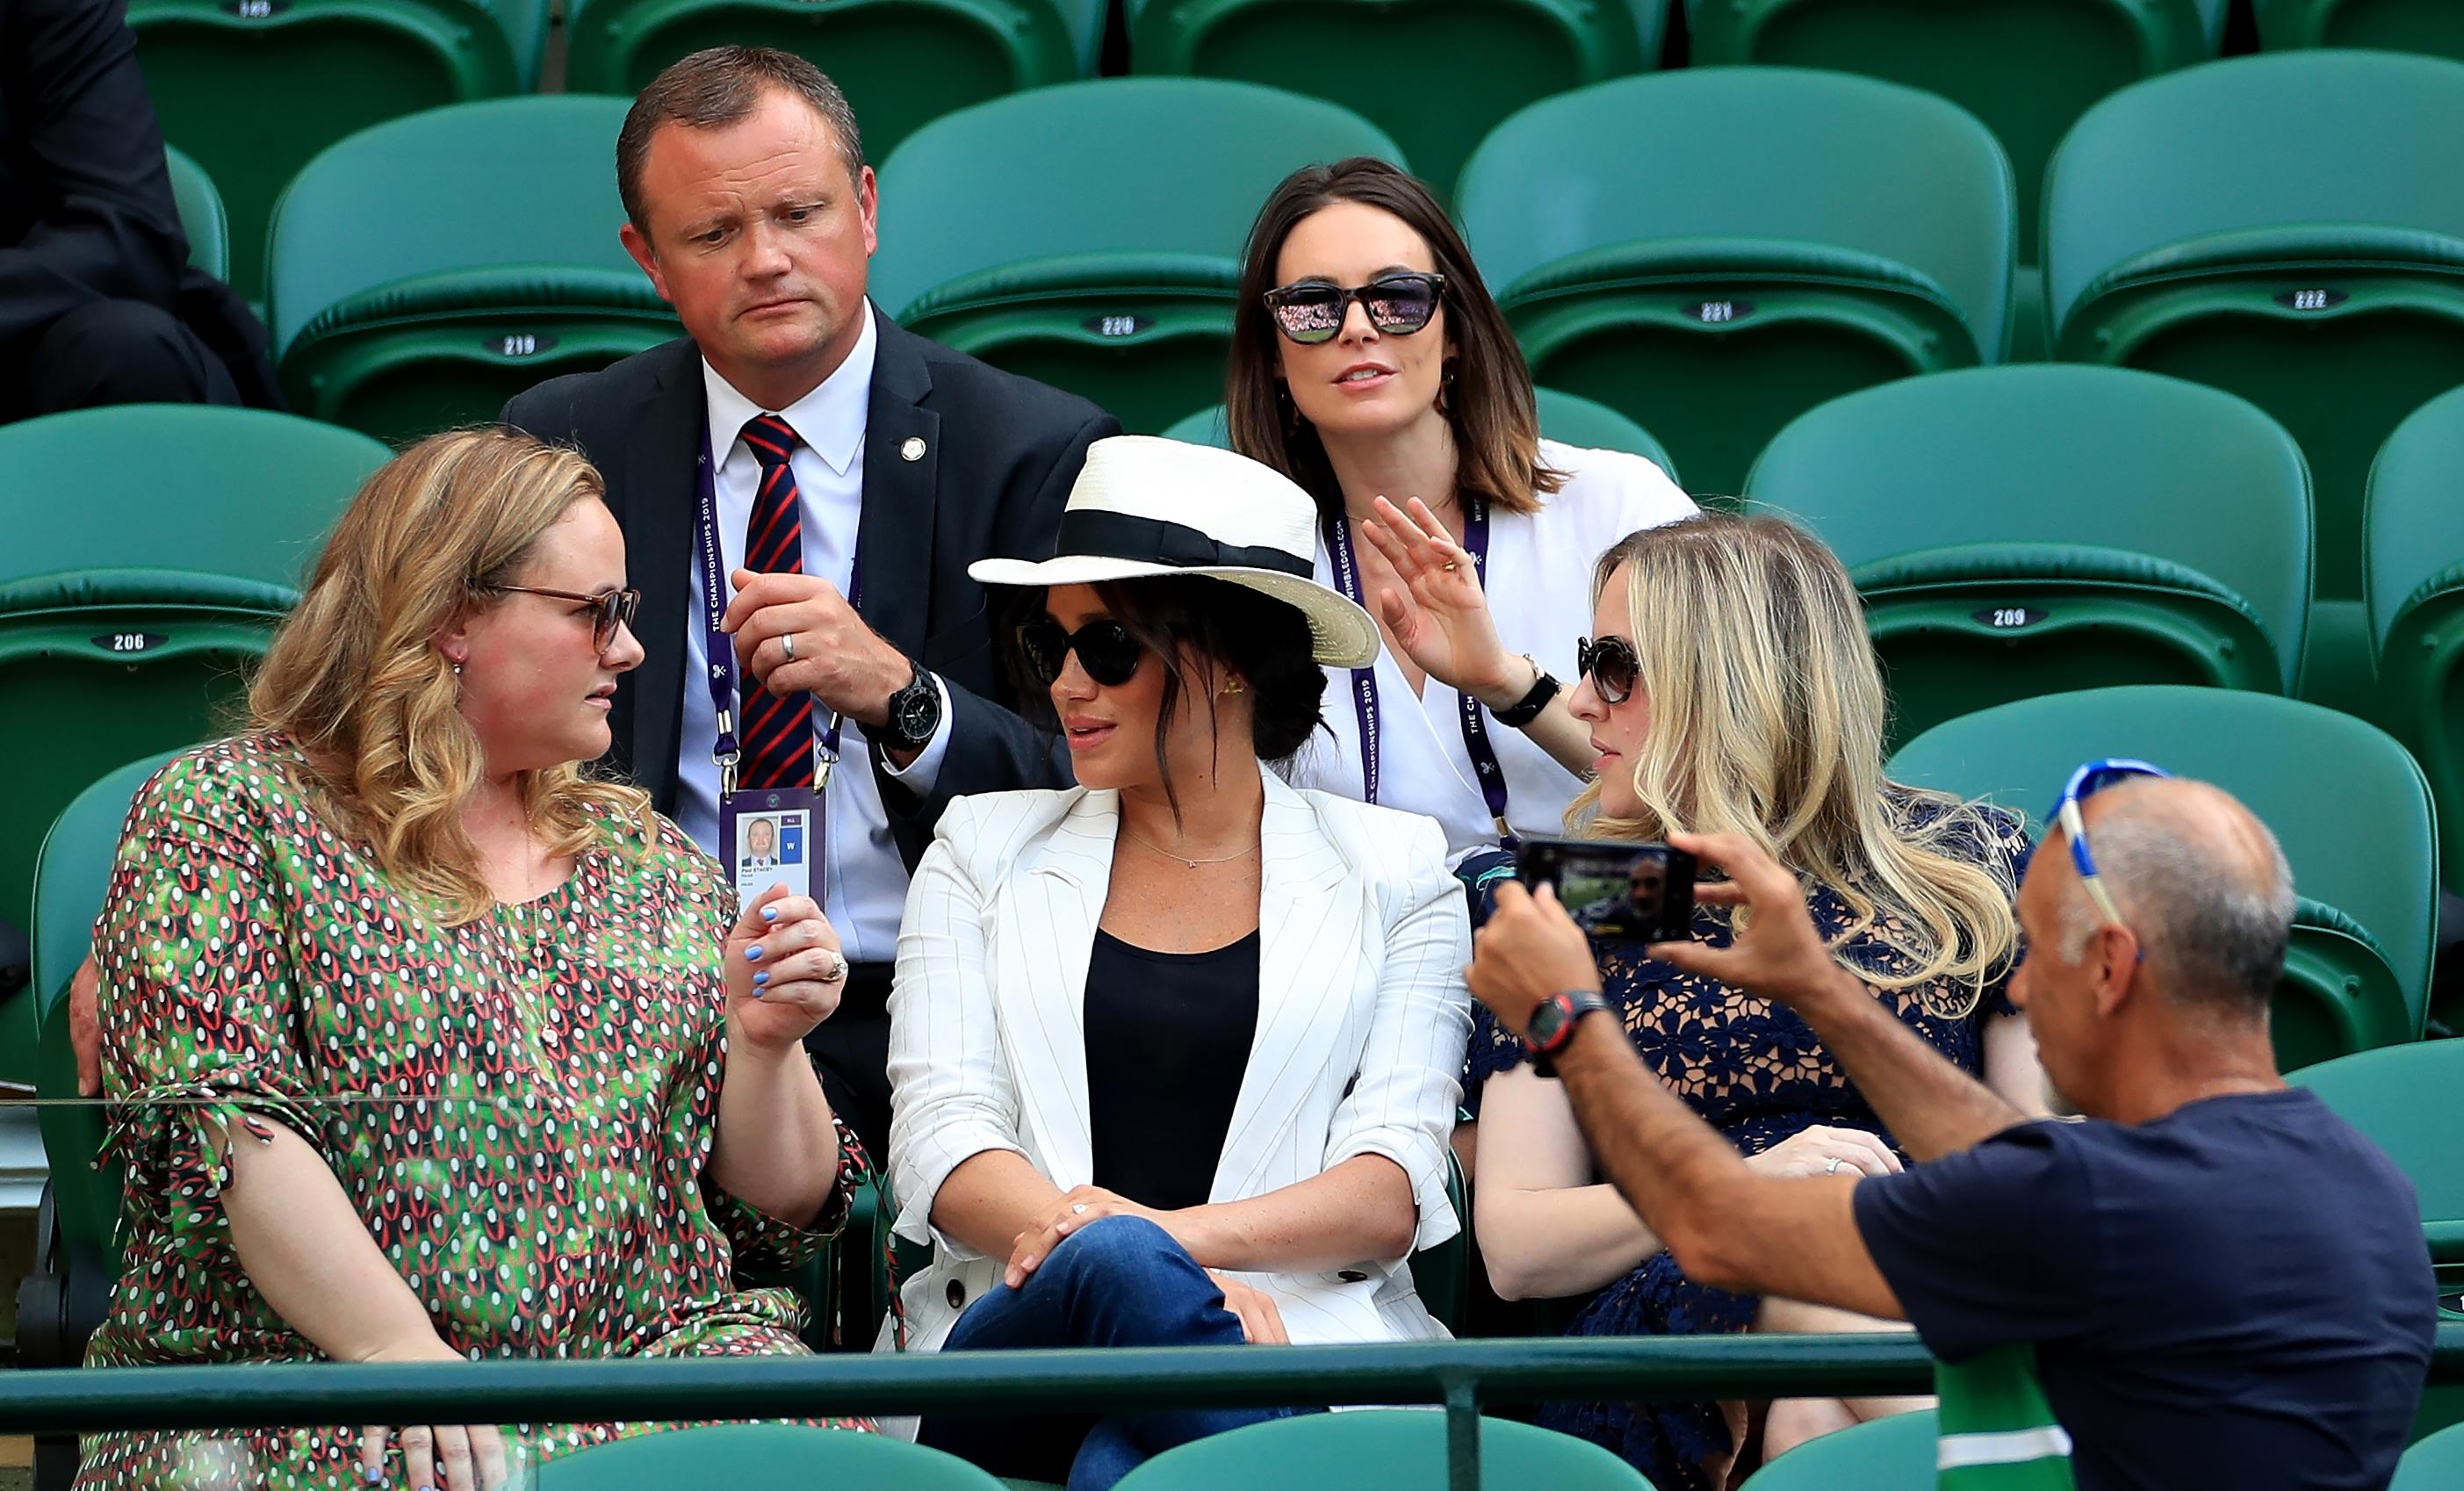 A spectator takes a selfie as the Duchess of Sussex watches the Serena Williams match on court one during day four of the Wimbledon Championships at the All England Lawn Tennis and Croquet Club, Wimbledon. (Photo by Mike Egerton/PA Images via Getty Images)